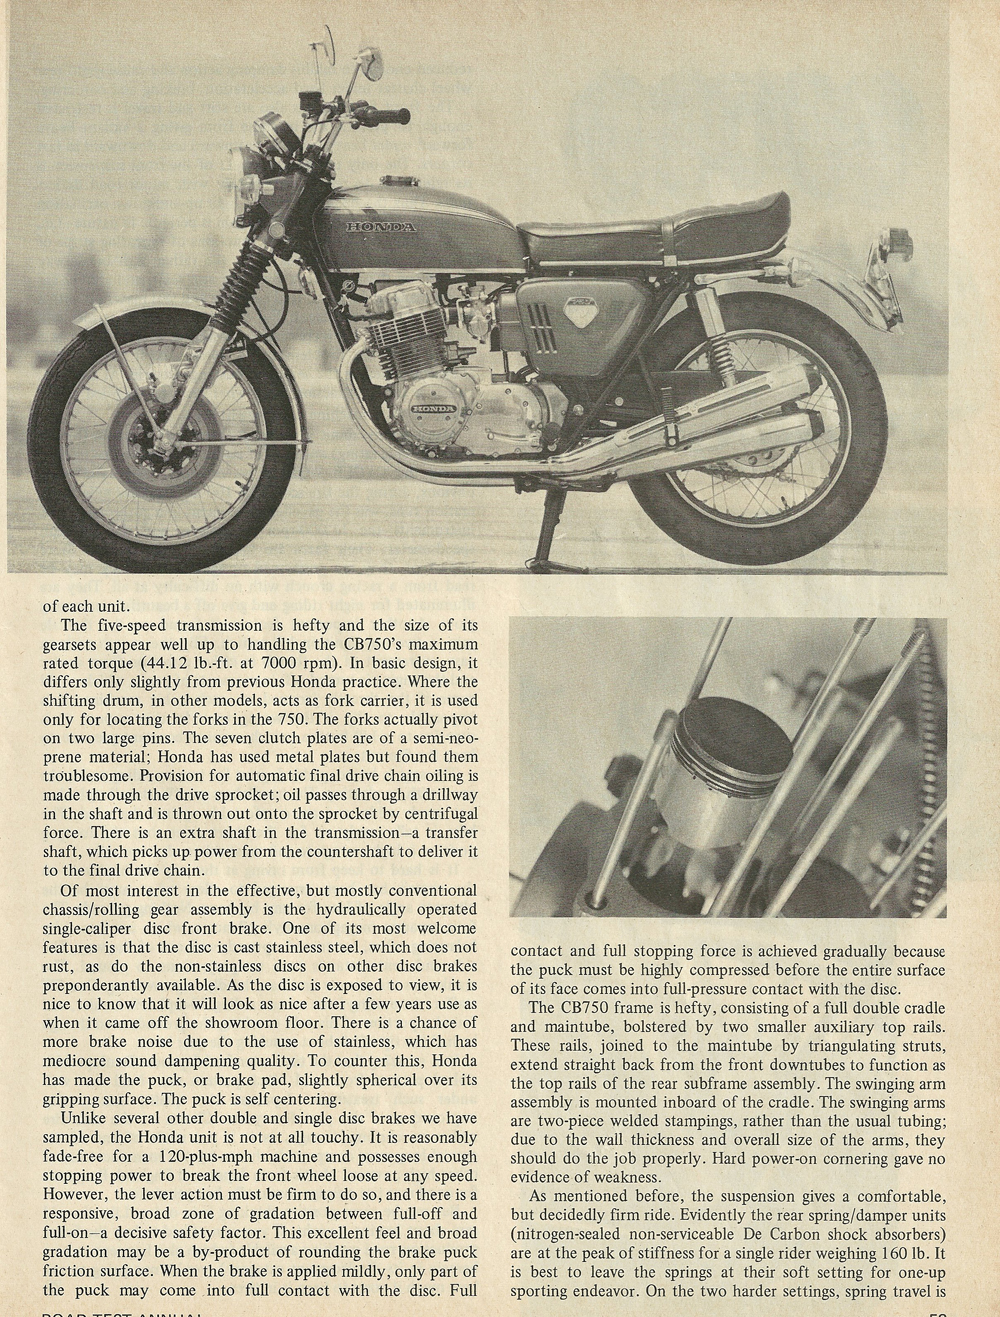 1969 Honda CB750 road test 5.jpg